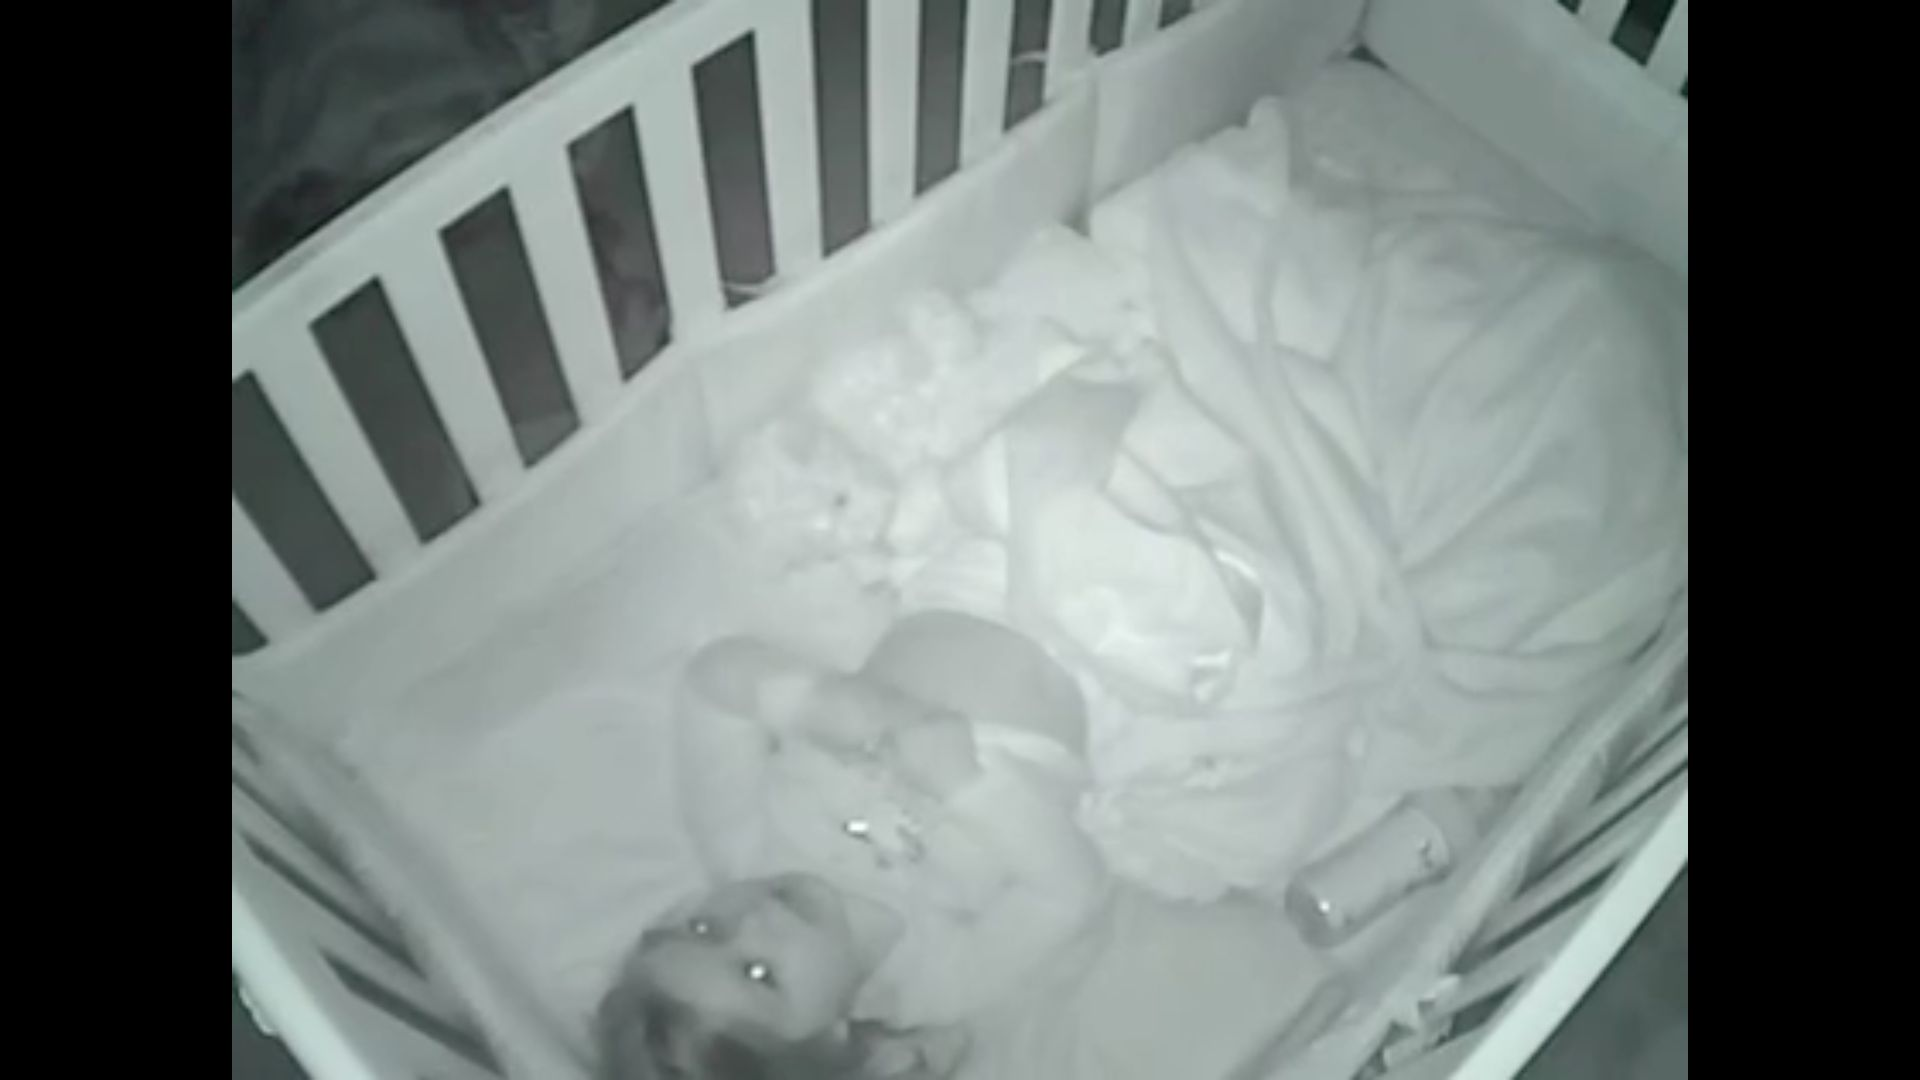 A baby monitor captured a South Carolina toddler praying to God about all the people in her life she's thankful for.